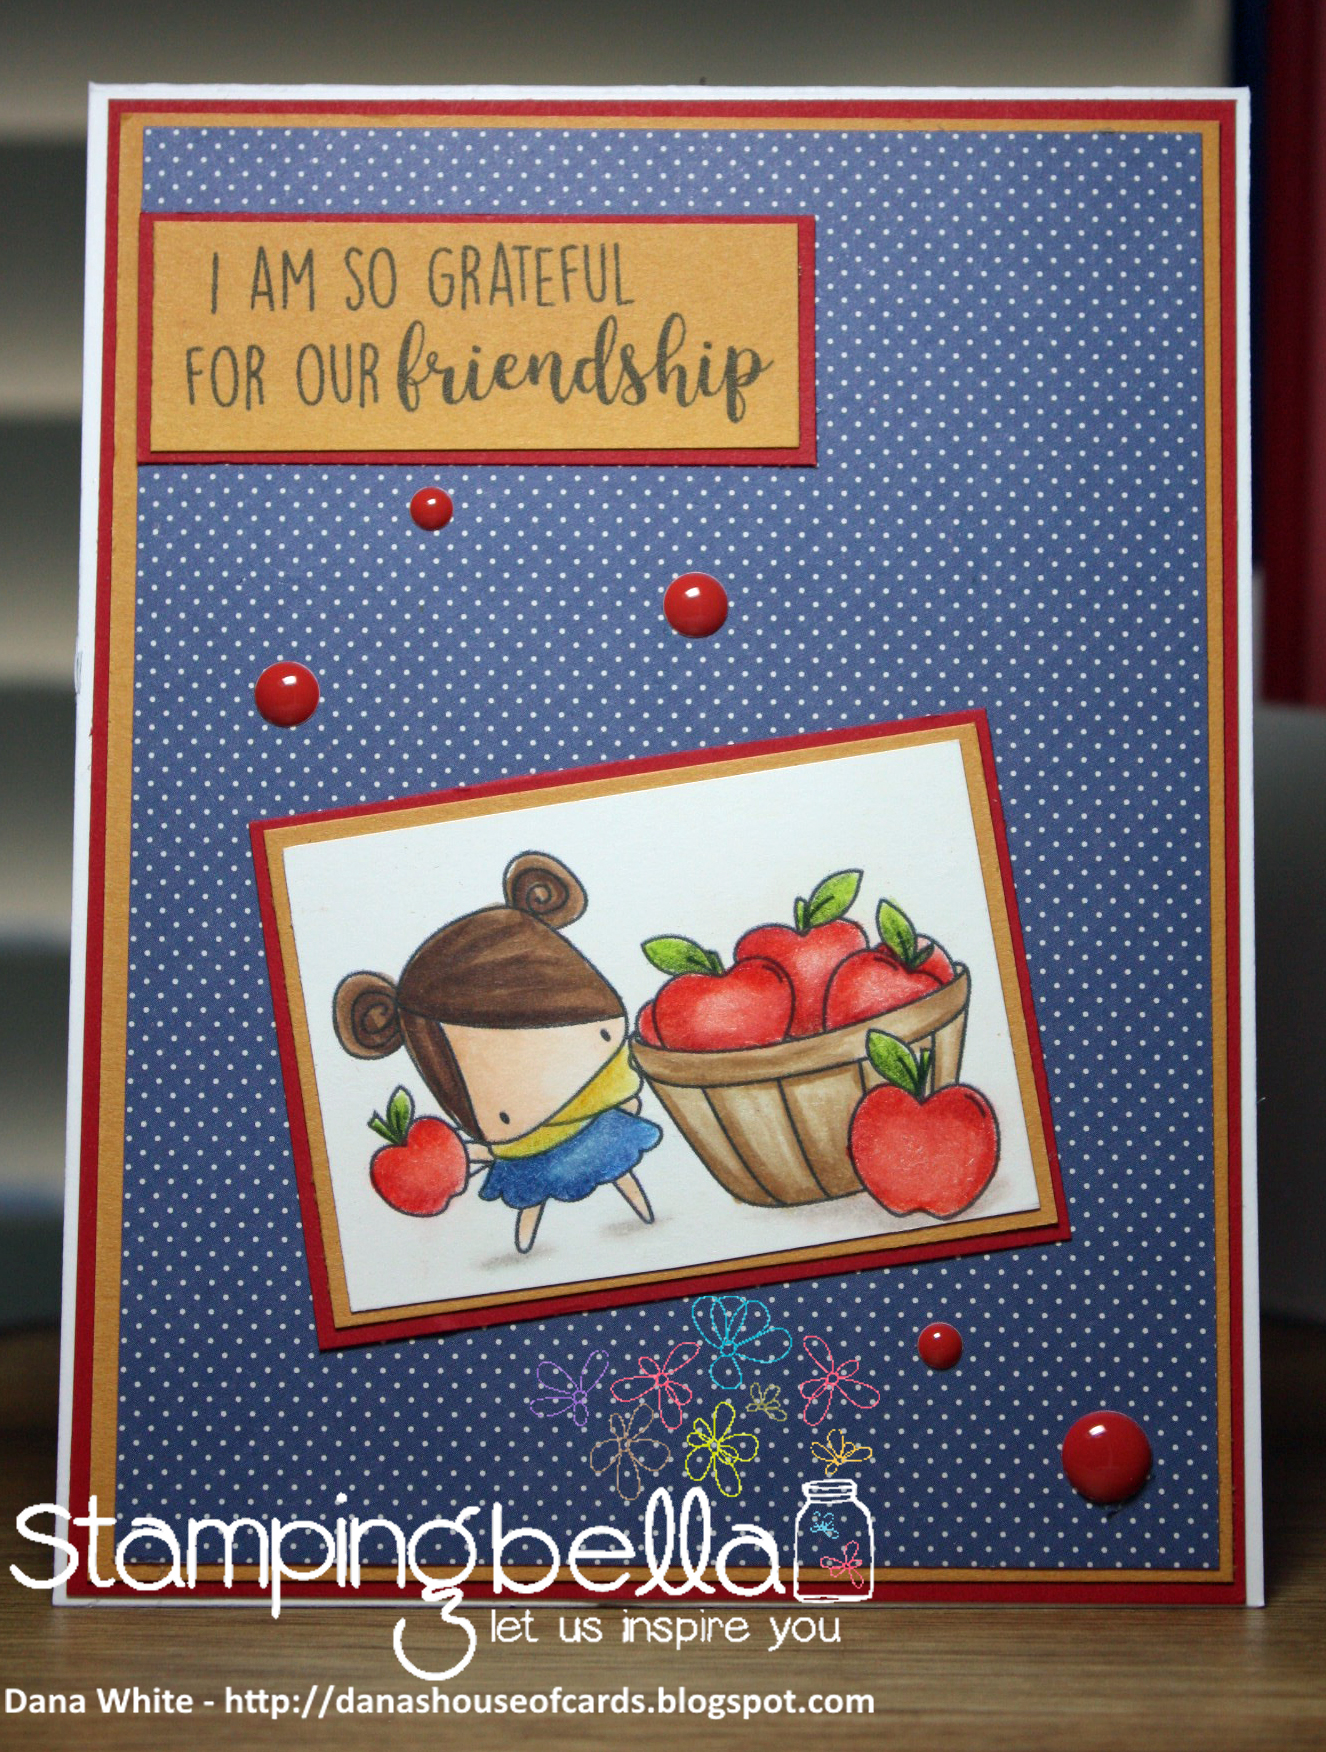 Stamping Bella SNEAK PEEK DAY 1- STAMPS USED: FALL SENTIMENT SET, THE LITTLES-APPLE PICKING image.. Card by Dana White